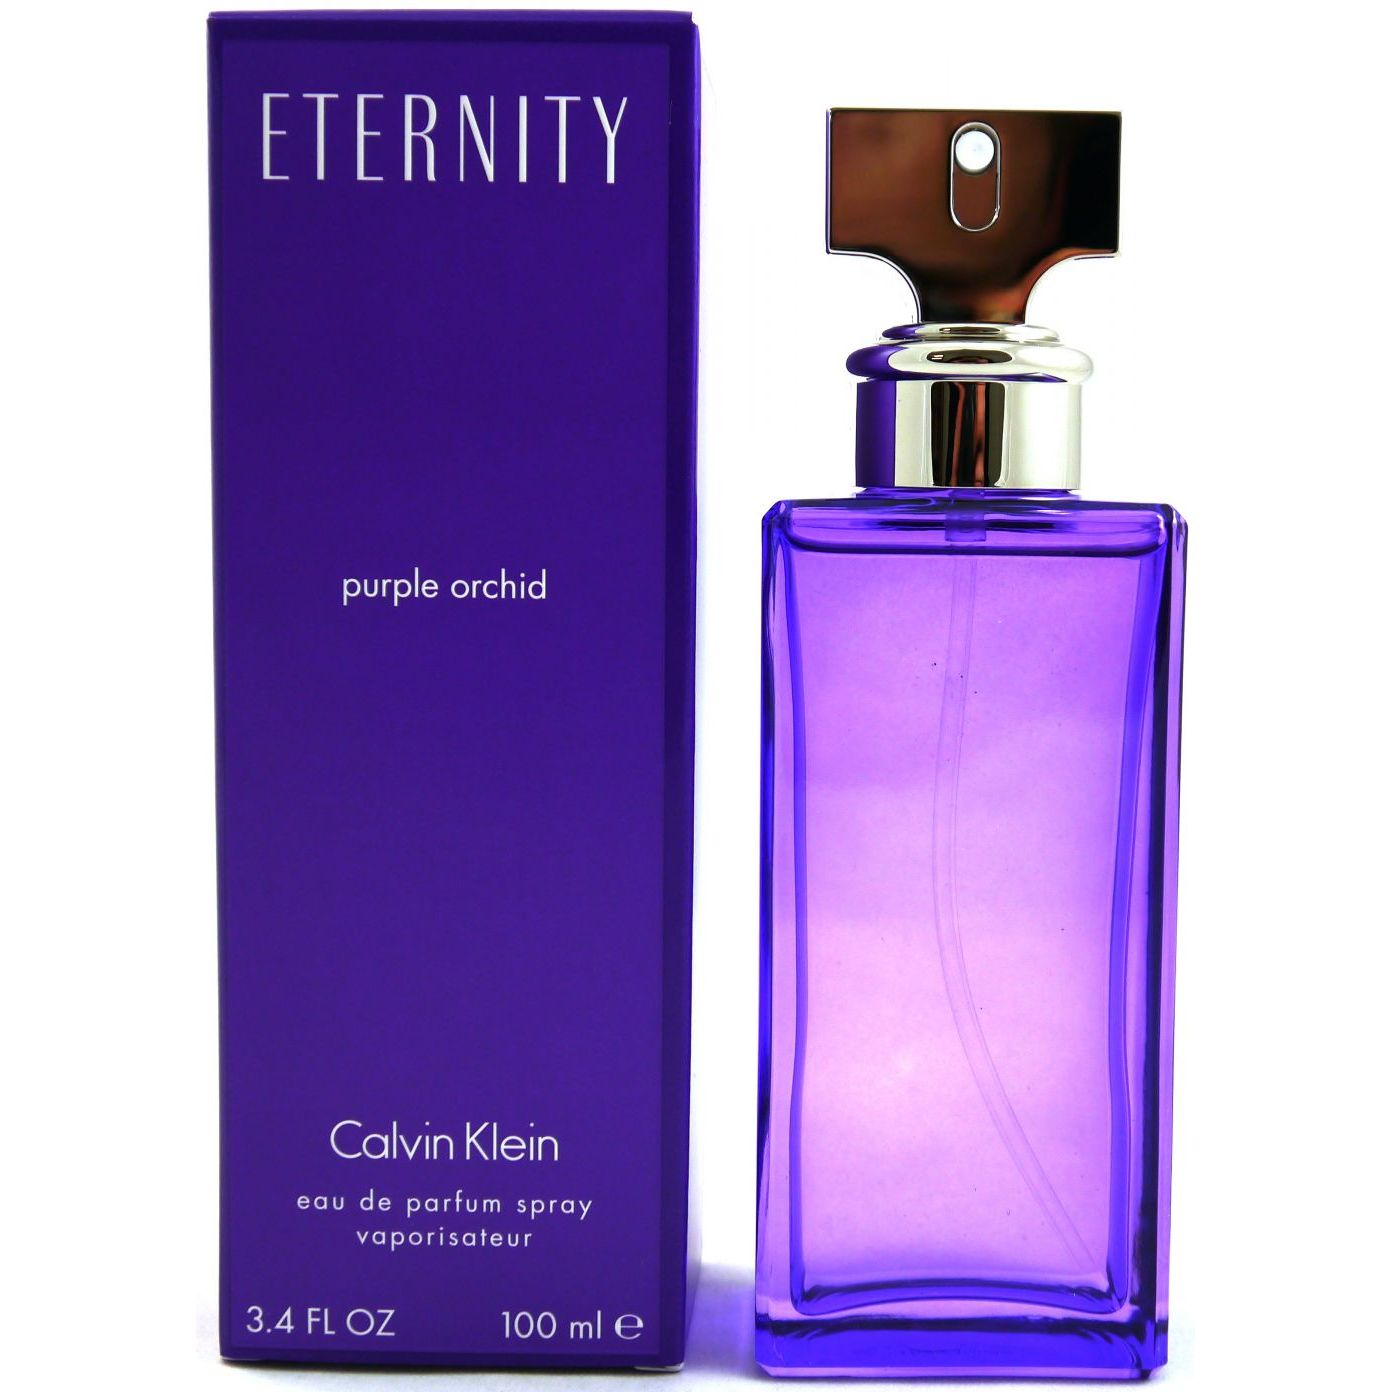 Calvin Klein Eternity Purple Orchid 100 Ml Eau De Parfum Edp Bei